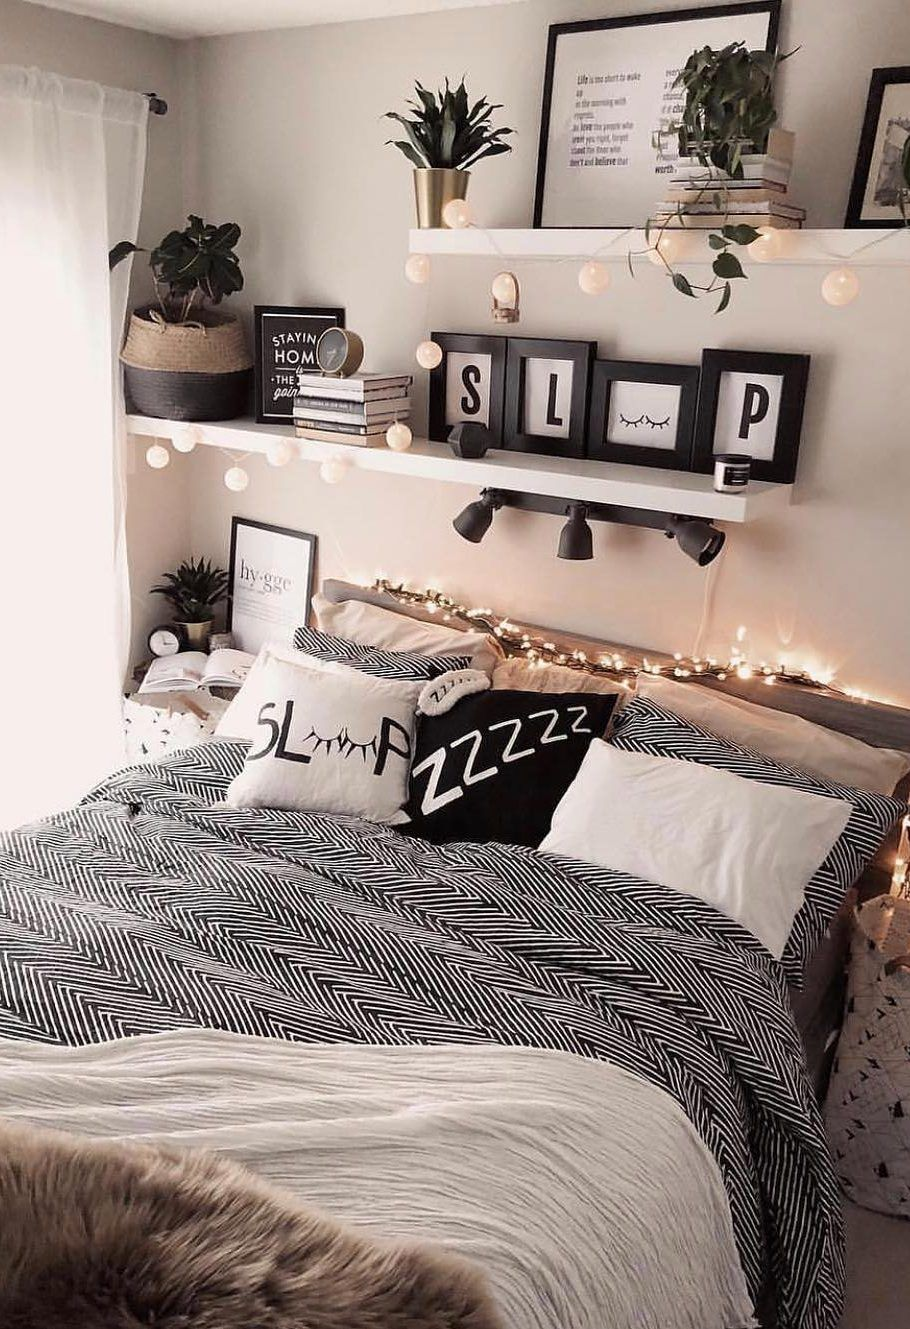 42 Inspiring Modern Bedroom Design Ideas For This Year Page 29 Of 40 Womensays Com Women Blog Modern Bedroom Design Girl Bedroom Designs Bedroom Vintage